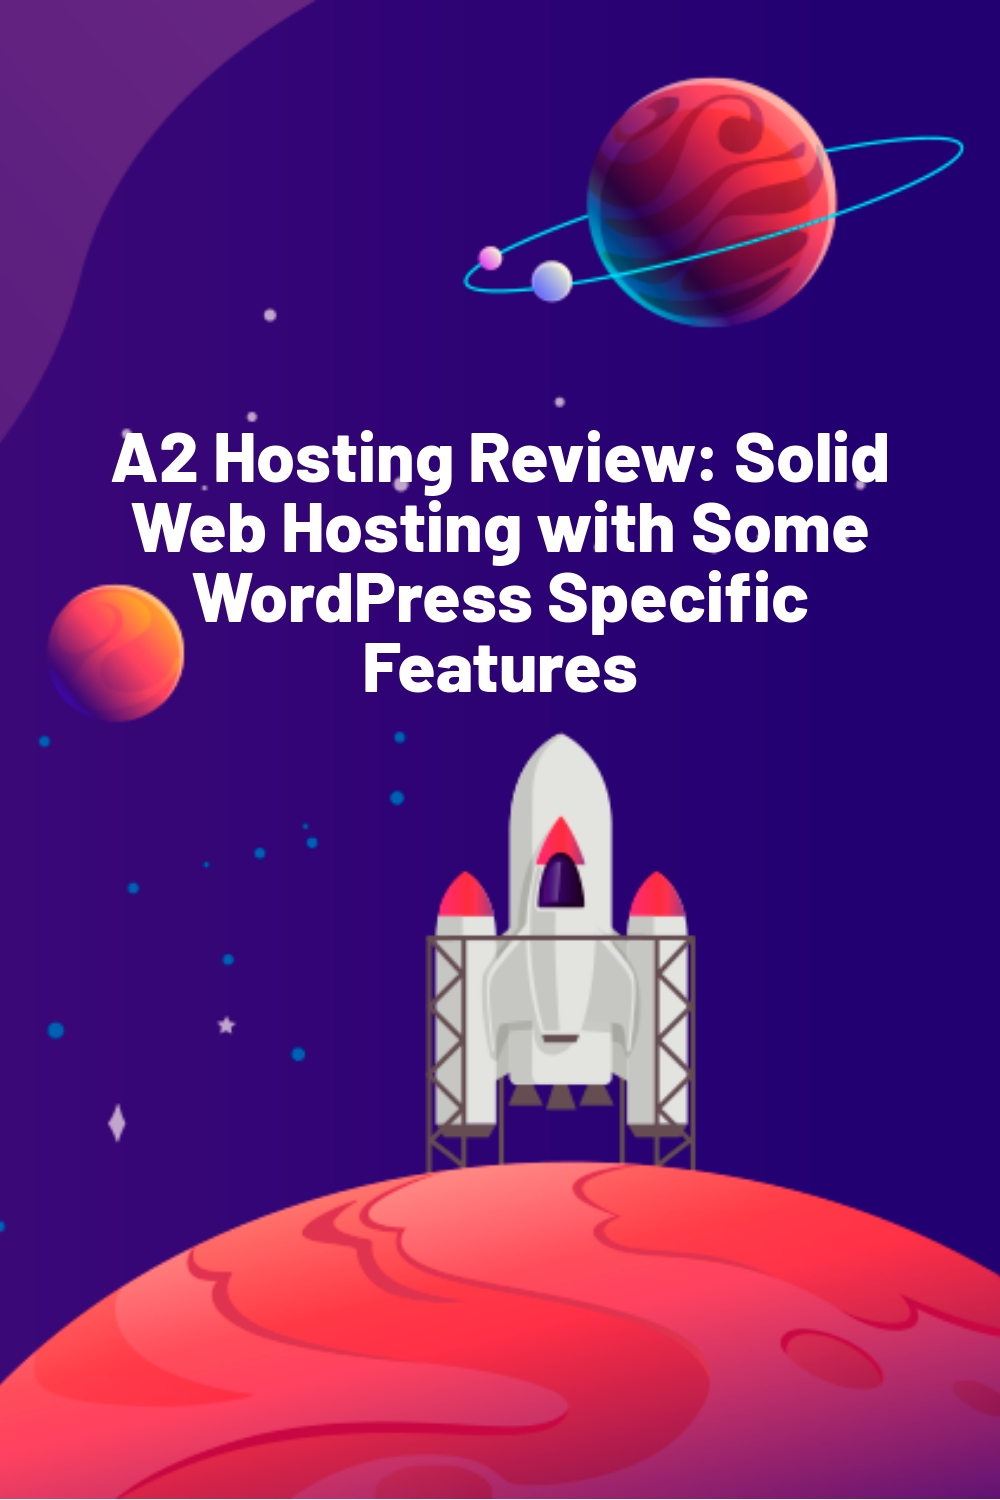 A2 Hosting Review: Solid Web Hosting with Some WordPress Specific Features